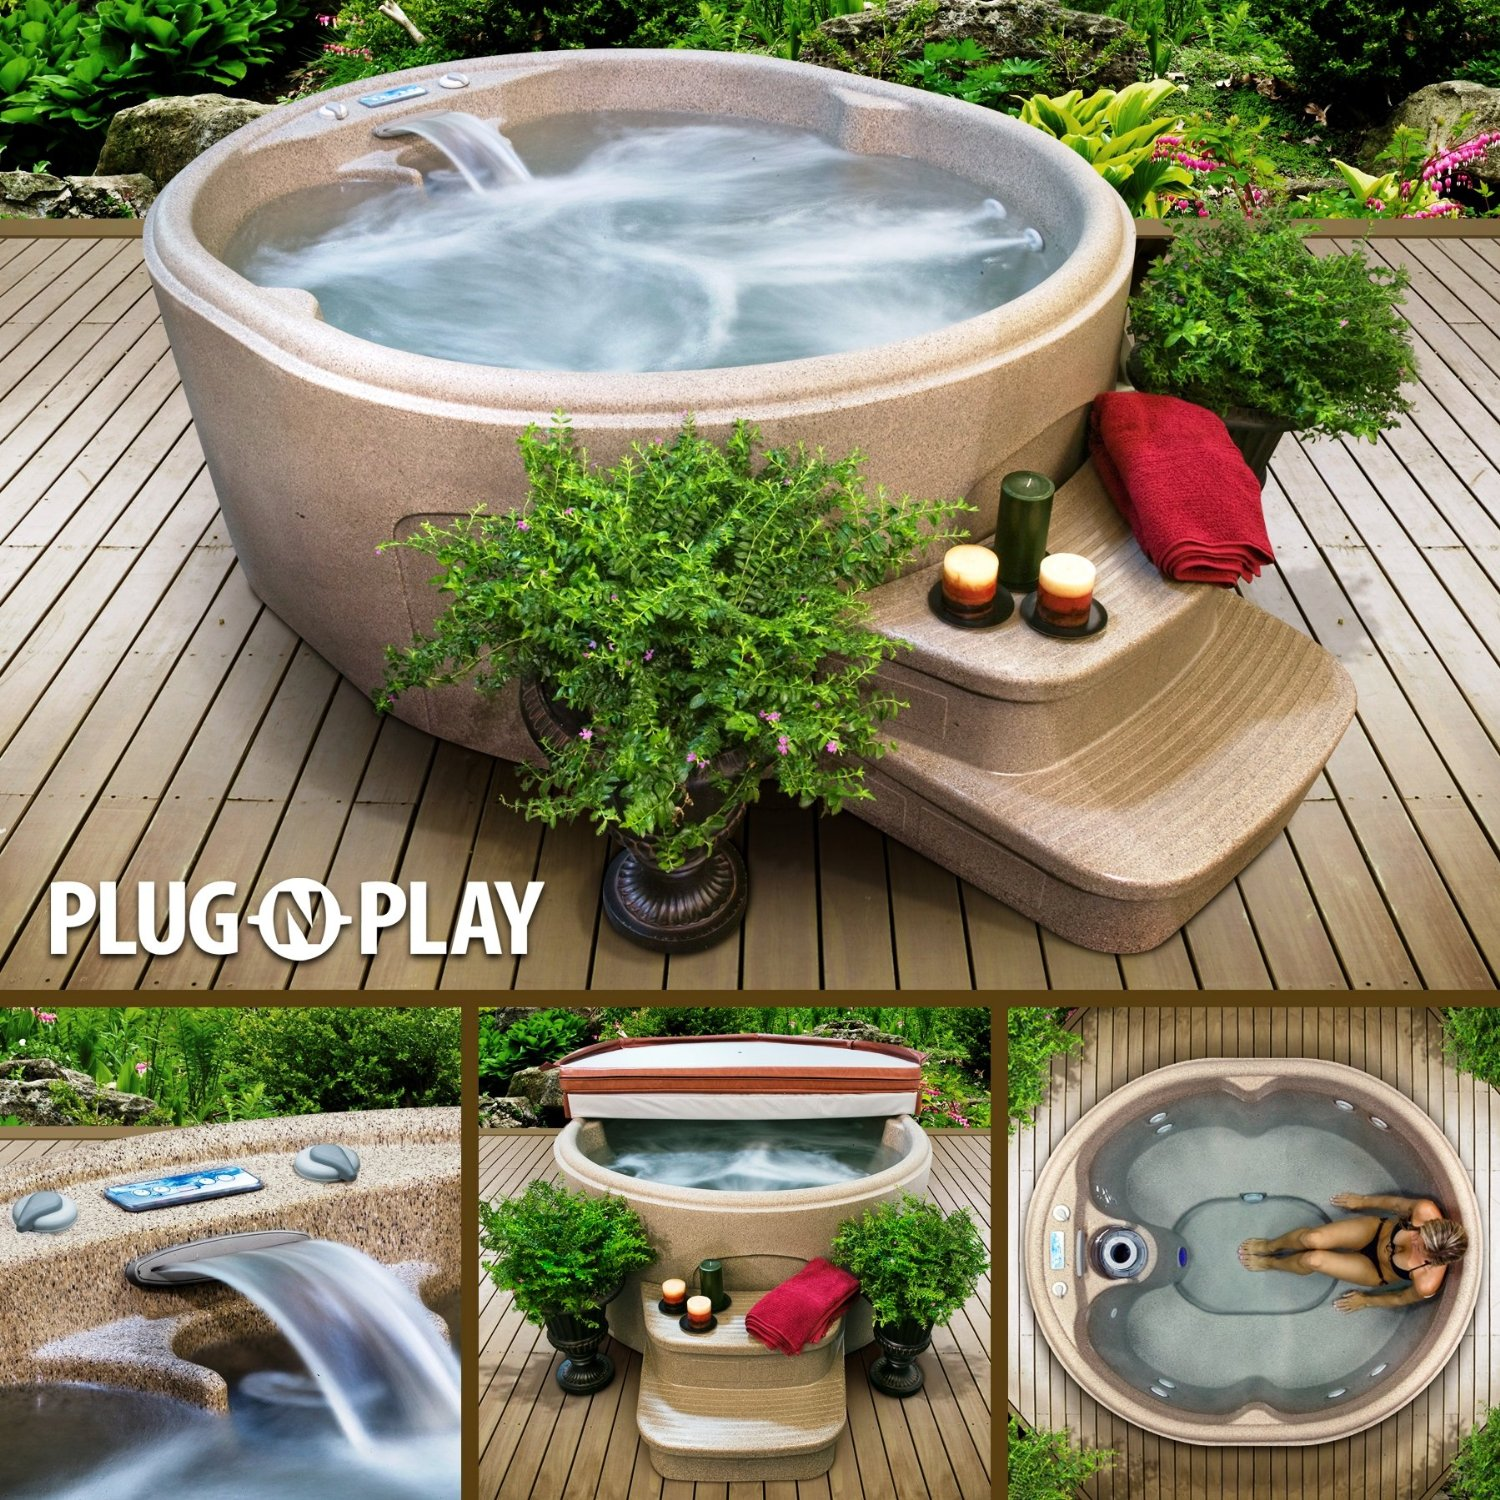 Plug n Play hot tub spa Rock Solid model